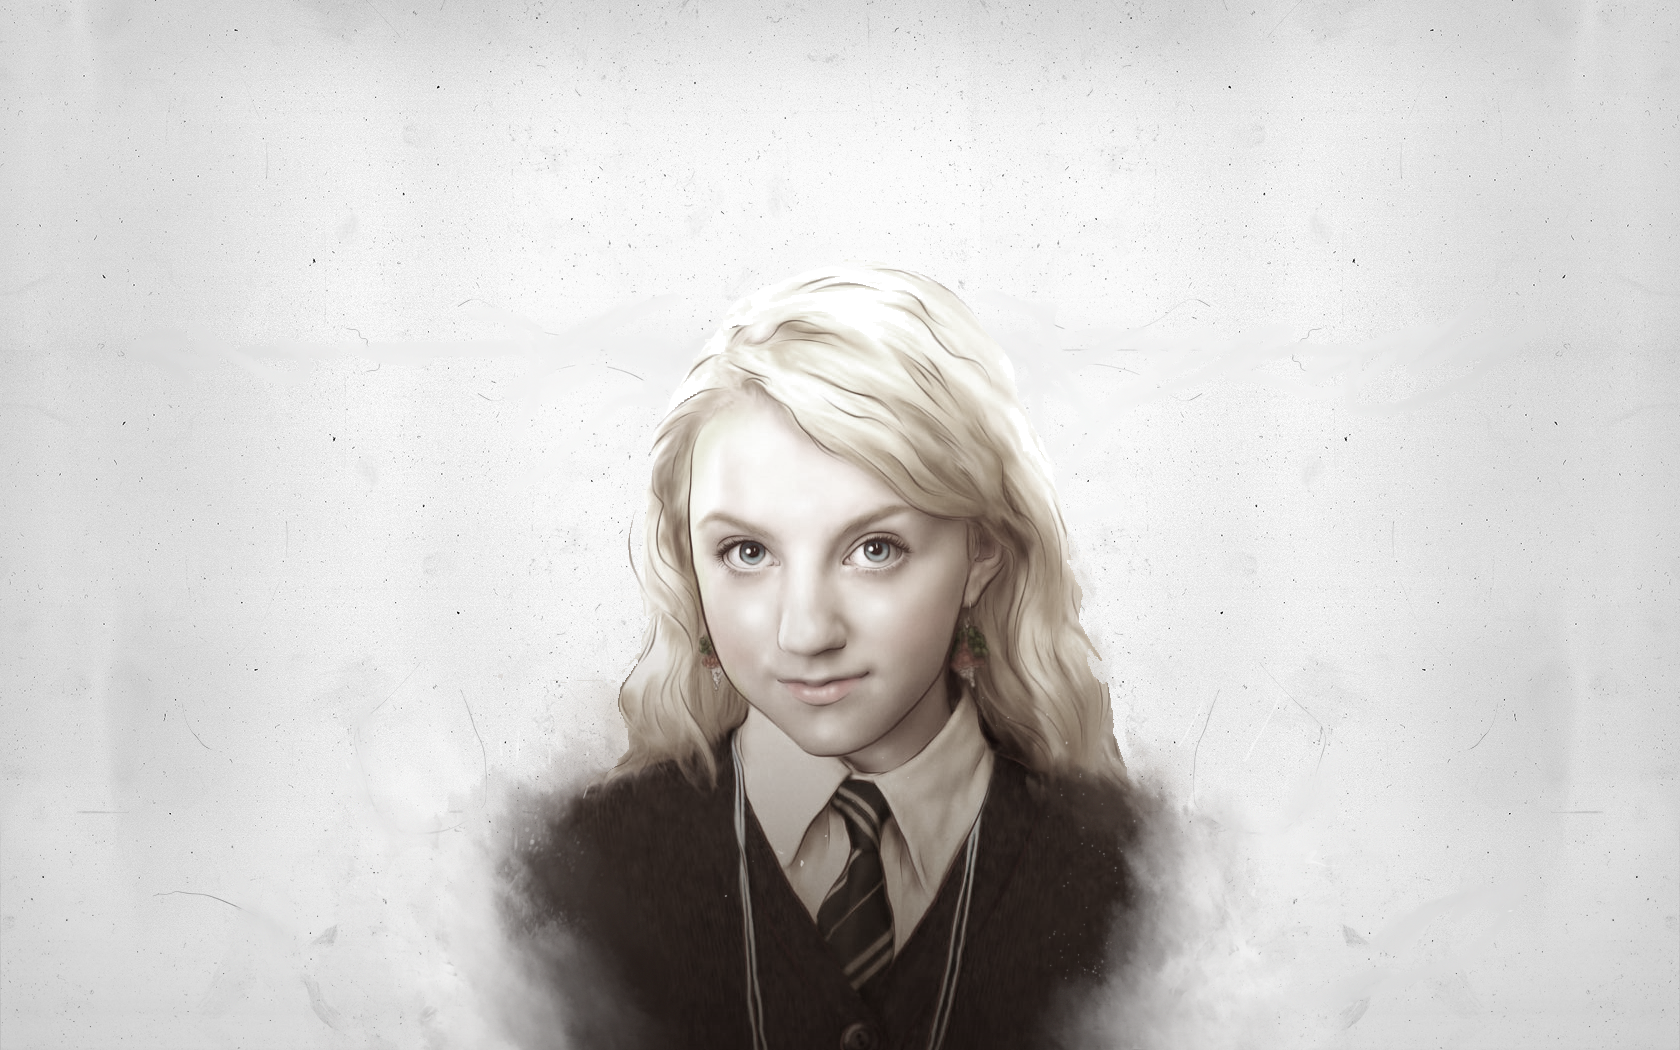 sexy backgrounds on evanna - photo #14